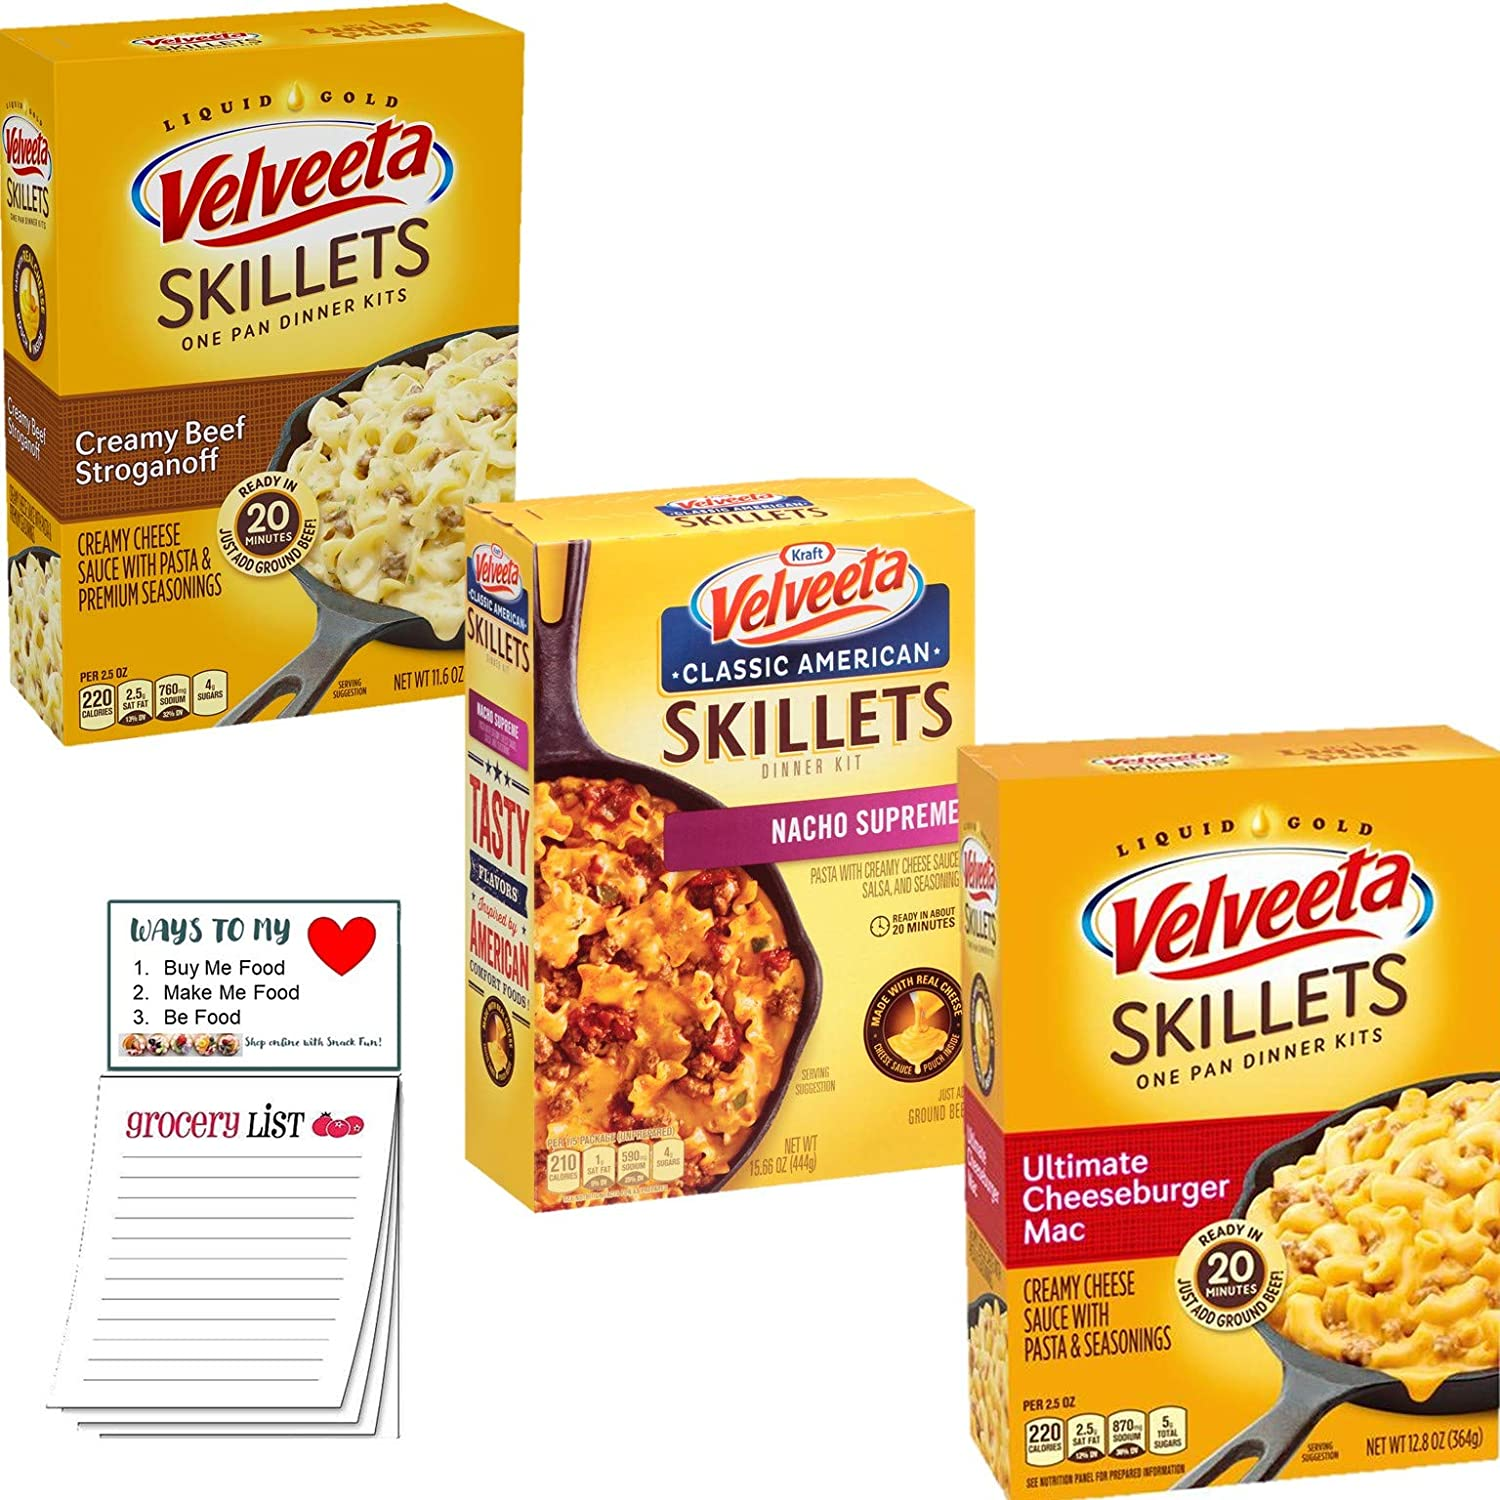 Velveta Skillets Variety pack of 3 | Box Dinner Varity Pack | Creamy Beef Stroganoff | Ultimate Cheeseburger Mac | Nacho Supreme |Snack Fun Shopping Pad